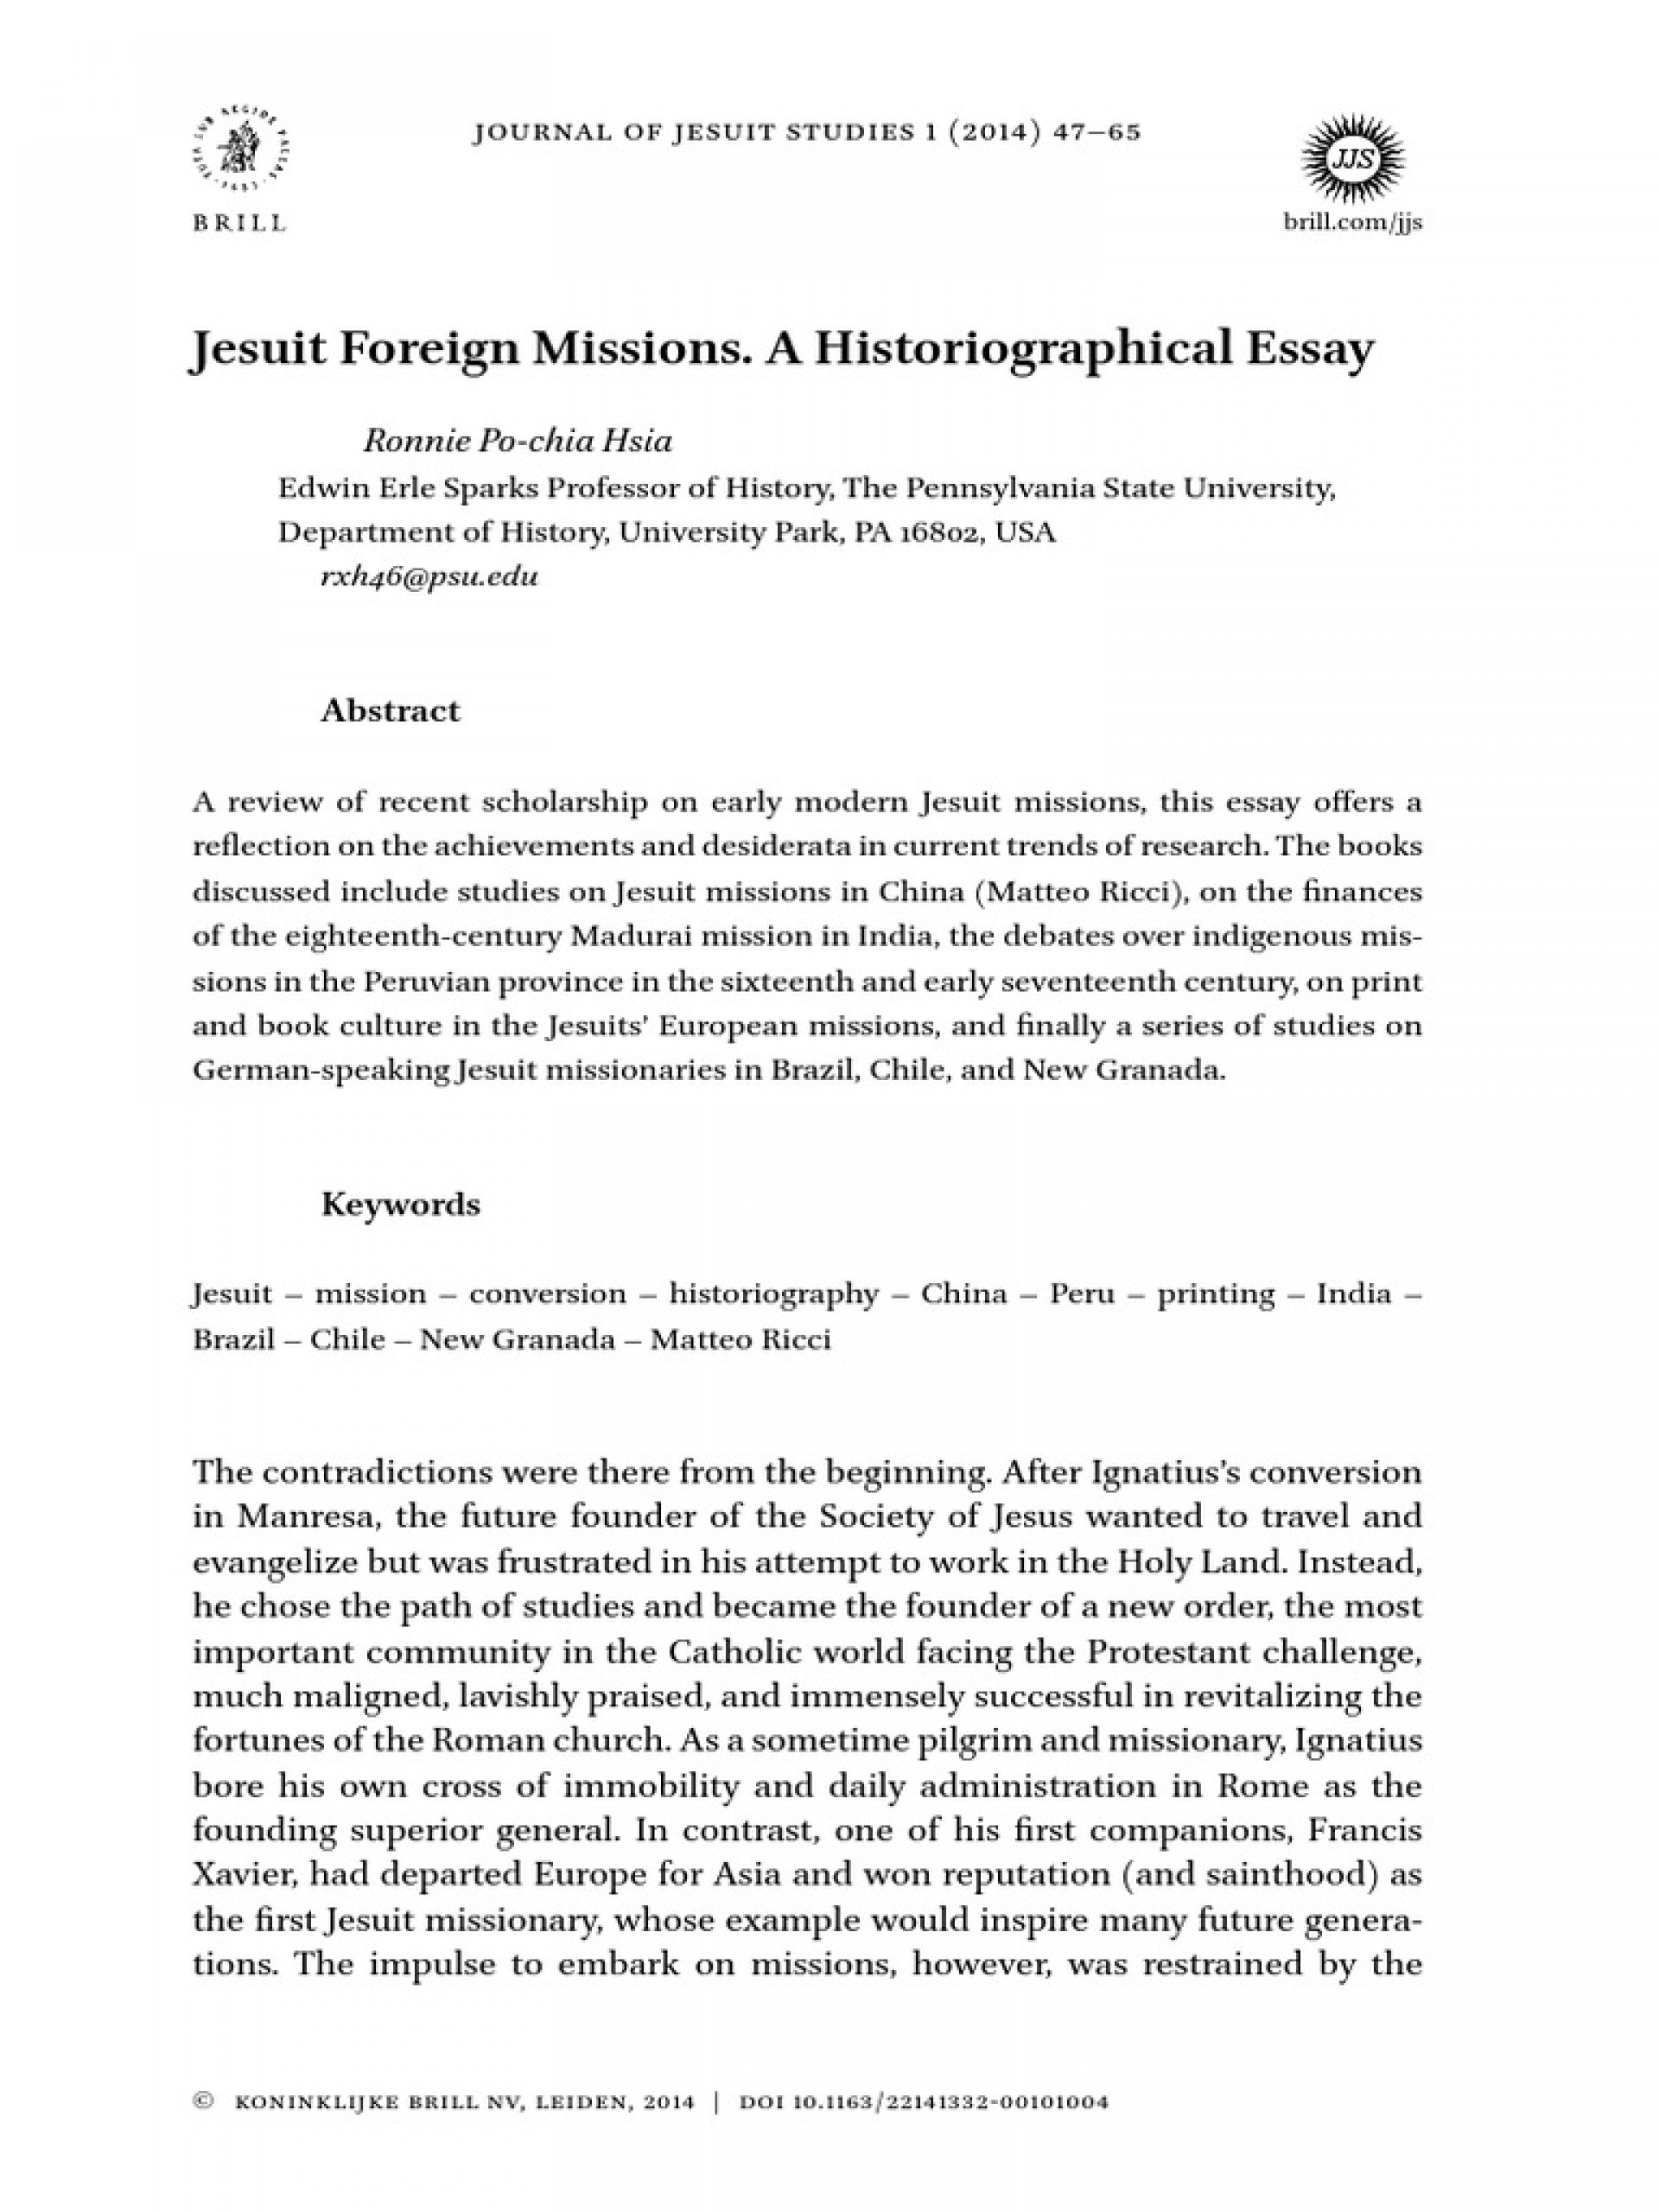 004 Historiographical Essay Example Jesuit Foreign Missions  58d38df8ee3435de0e6e4ab7 Phenomenal Historiography Sample On Slavery Topics1920